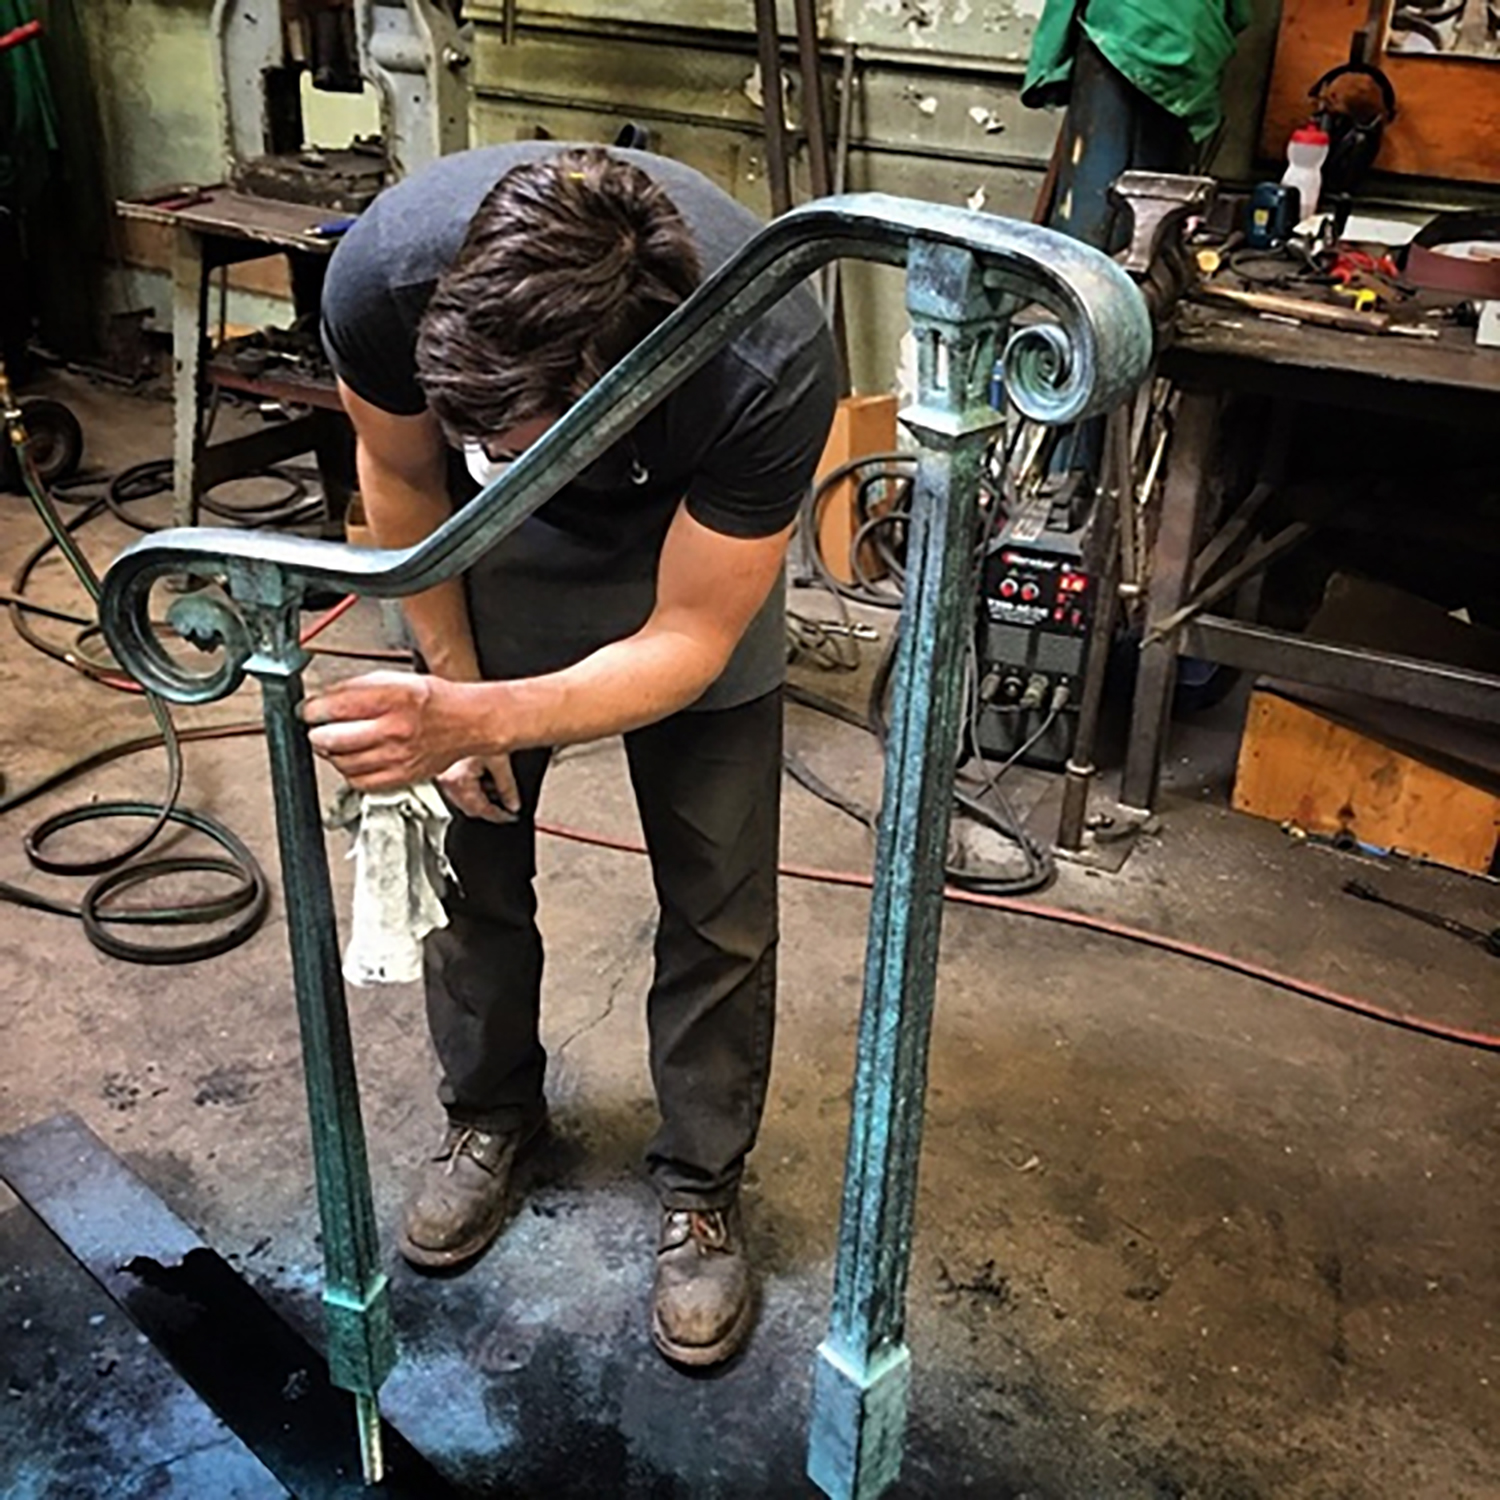 Figure 18: Warren Holzman doing final work on a new railing for Glencairn in the Iron Studio shop. Two railings were made from stainless steel, finished to resemble Monel, for Glencairn's front steps. Photograph courtesy of Warren Holzman.